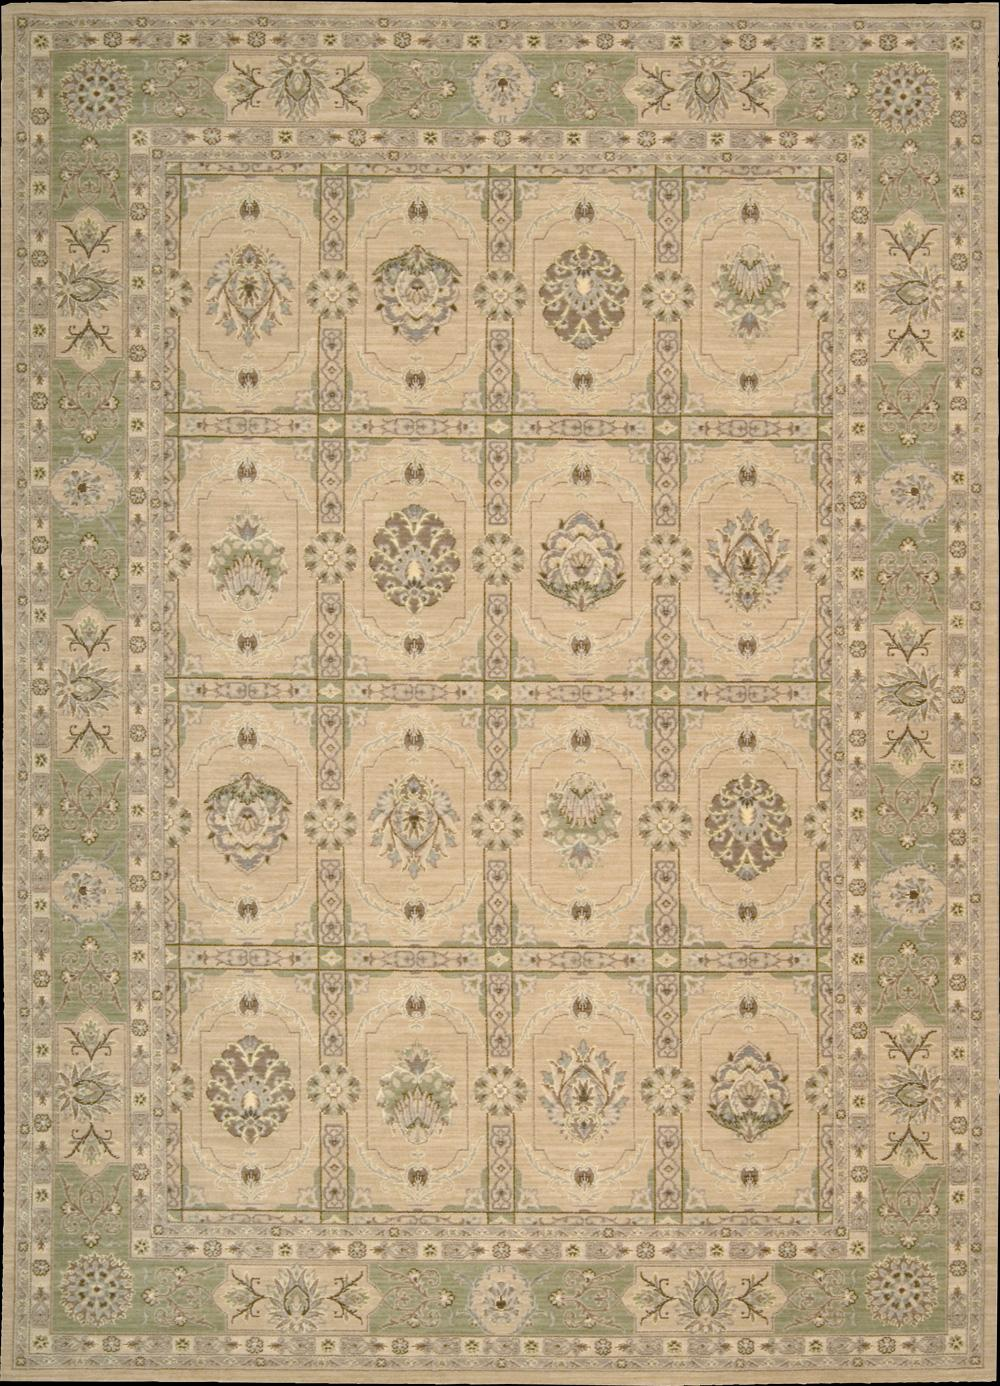 "Nourison Persian Empire Area Rug 7'9"" x 10'10"" - Item Number: 25563"